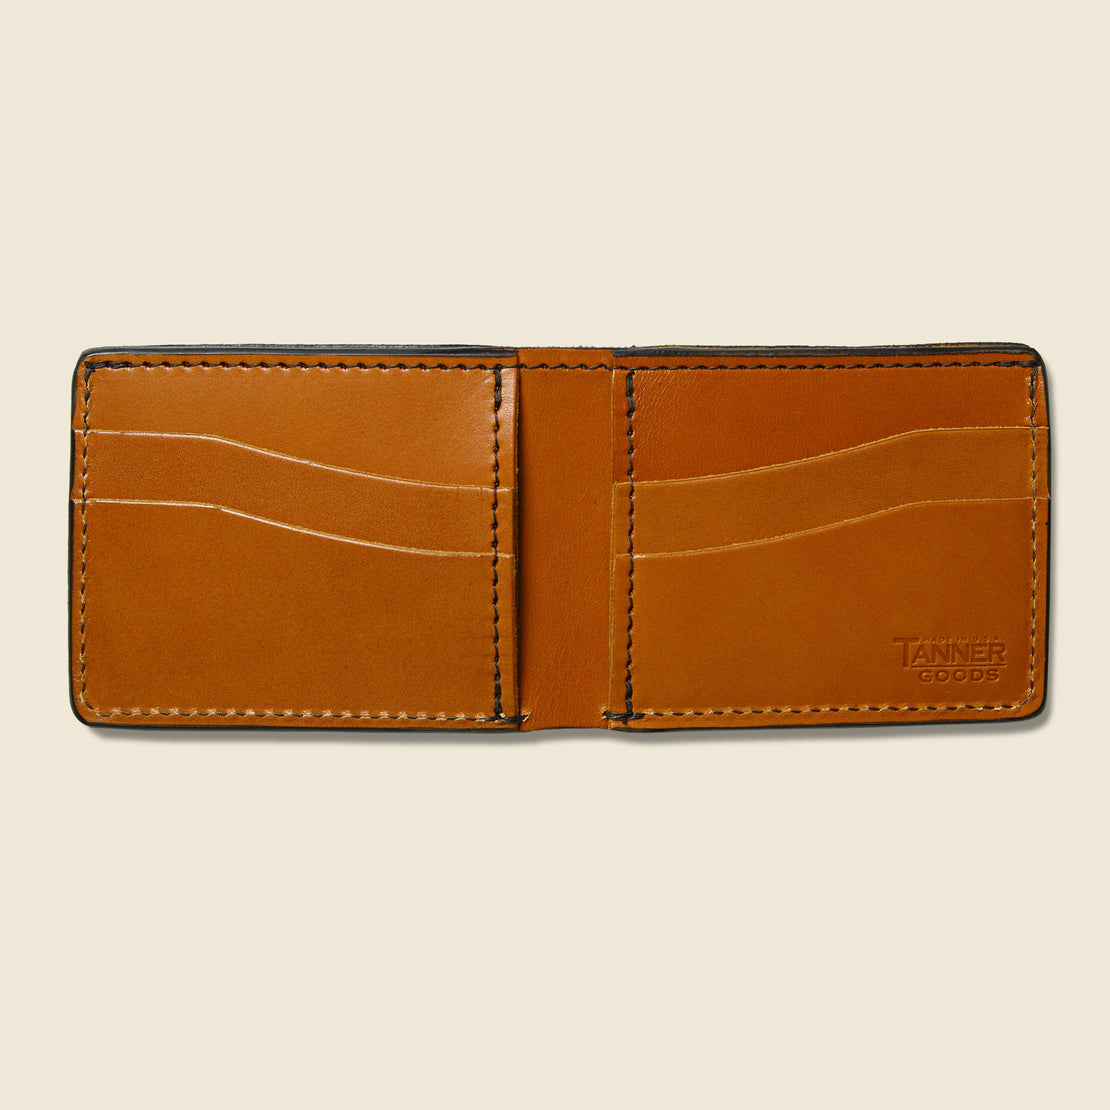 Utility Bifold Wallet - Saddle Tan - Tanner - STAG Provisions - Accessories - Wallets